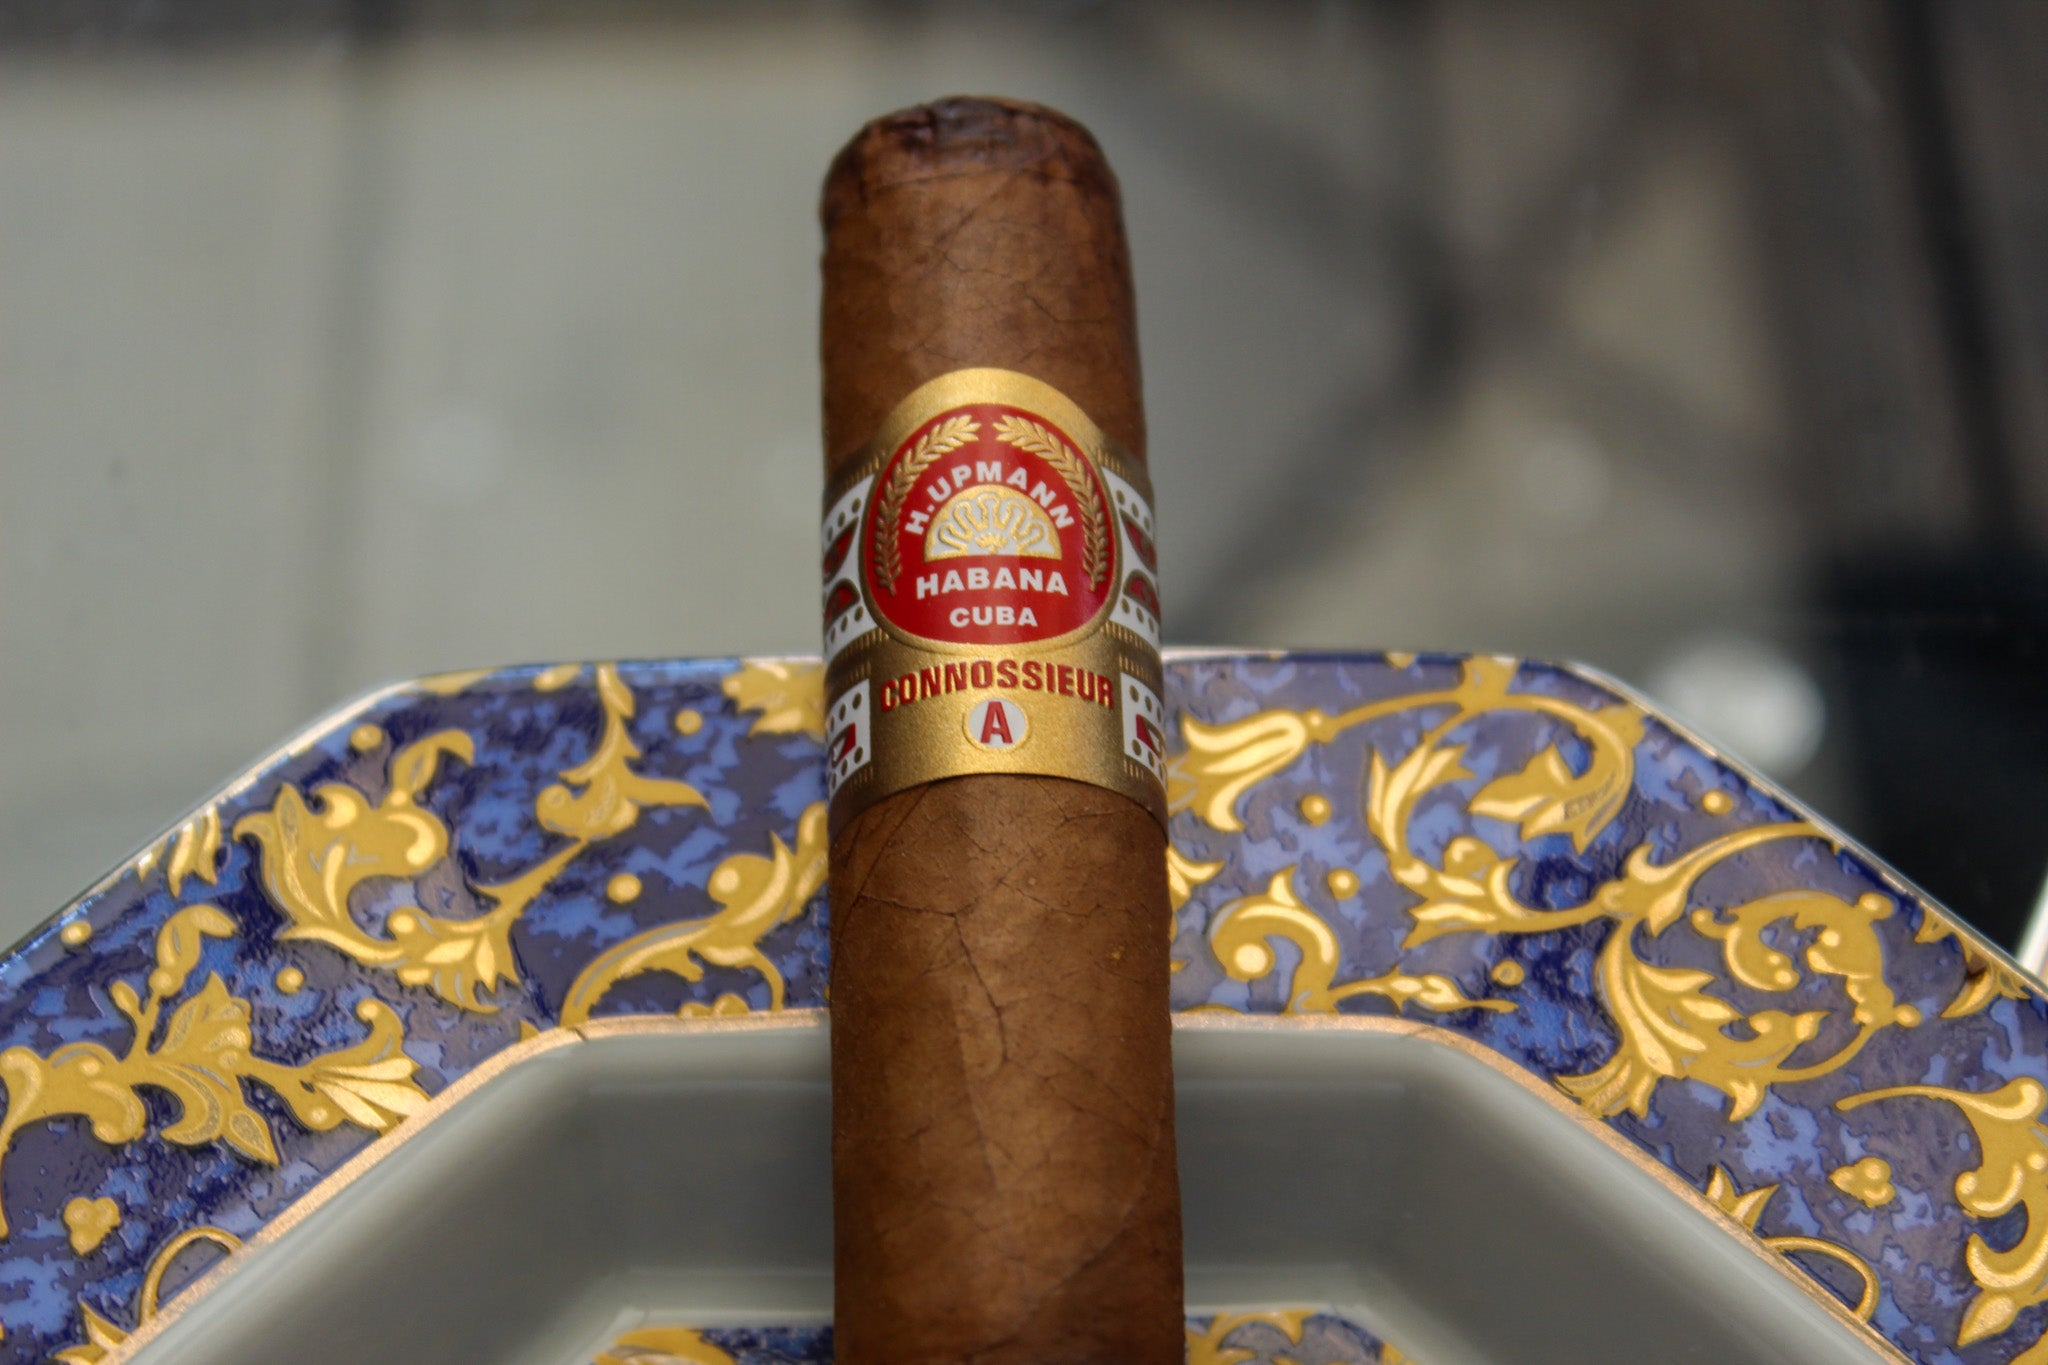 An initial spelling mistake on the cigar band of the Connossieur A has since been embraced by Habanos SA for the rest of the line